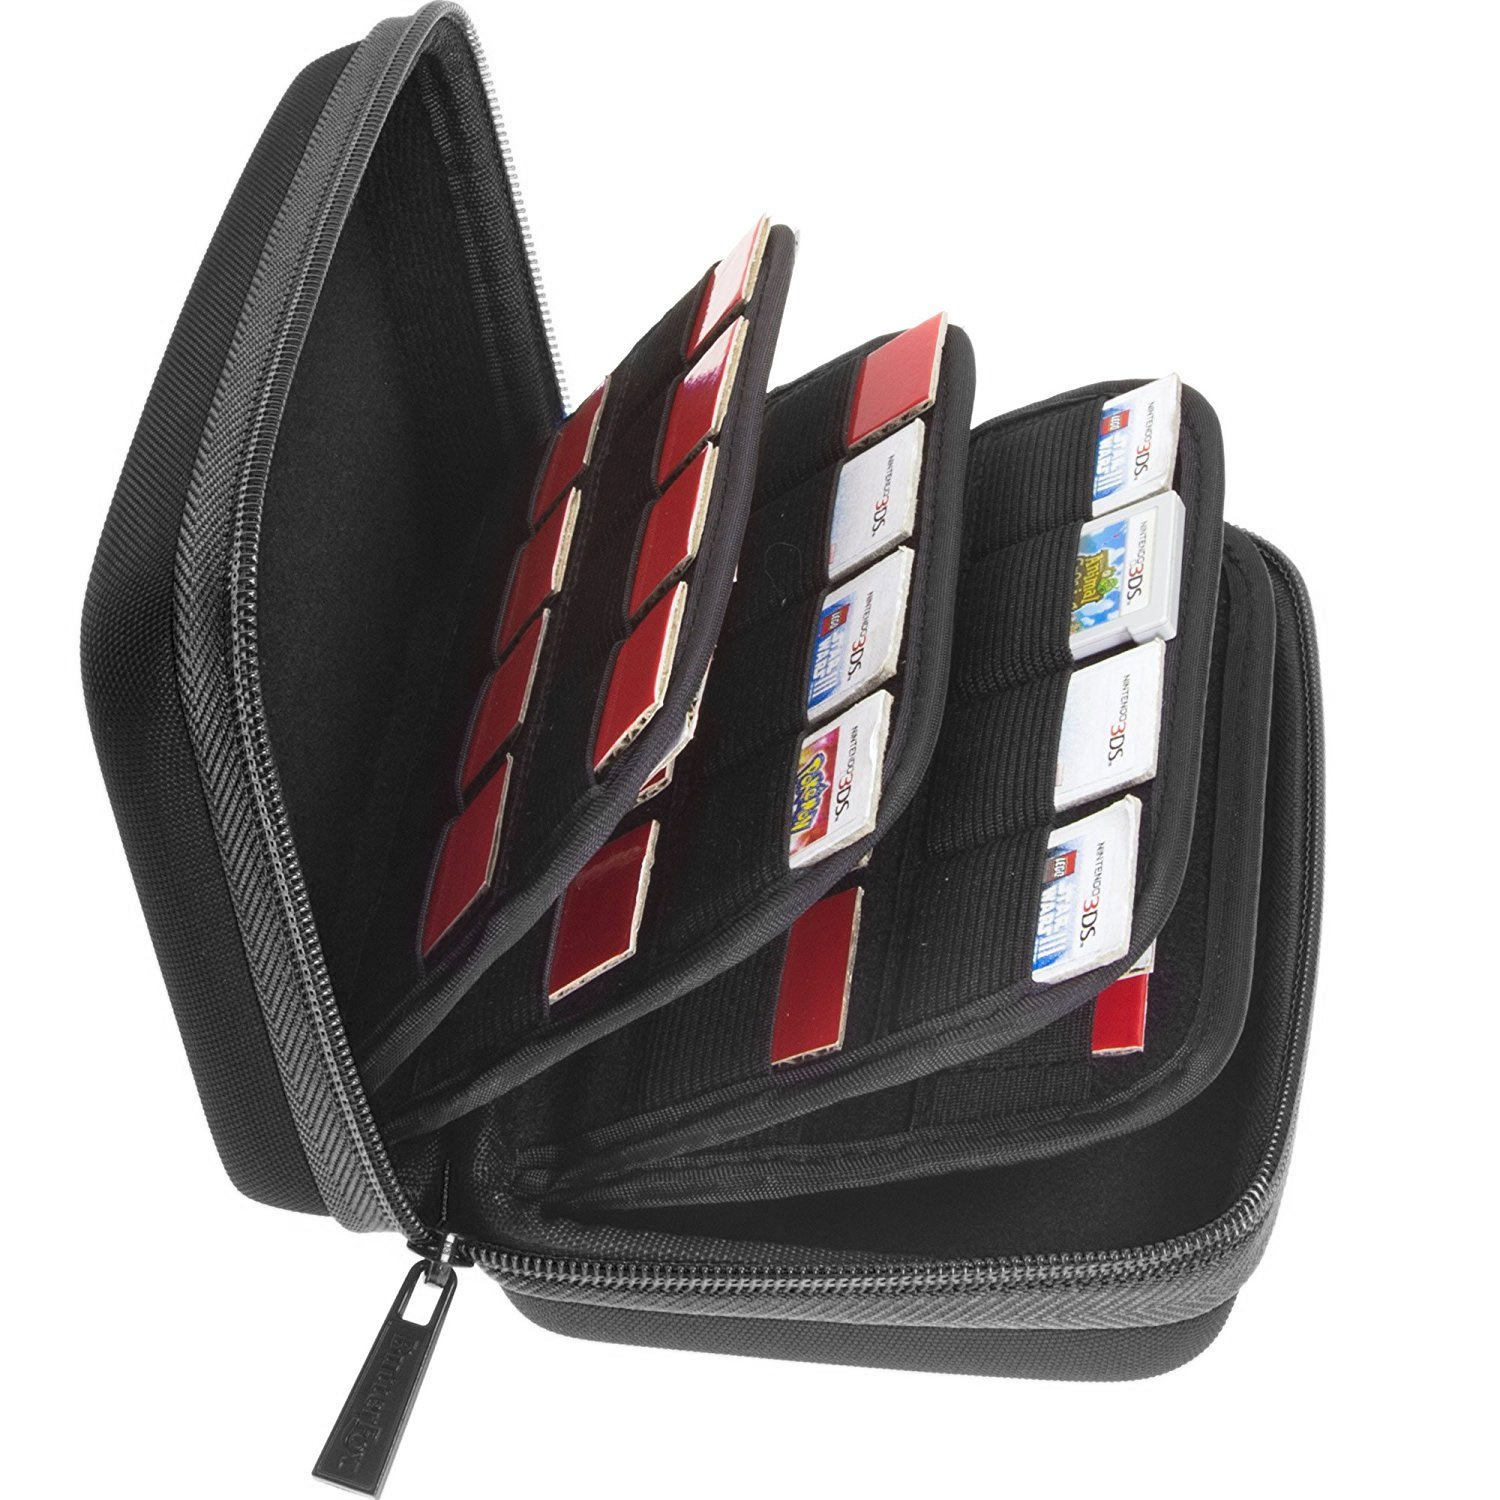 Butterfox 64 Game Card Storage Holder Hard Case for Nintendo 3DS, 2DS and DS - Black